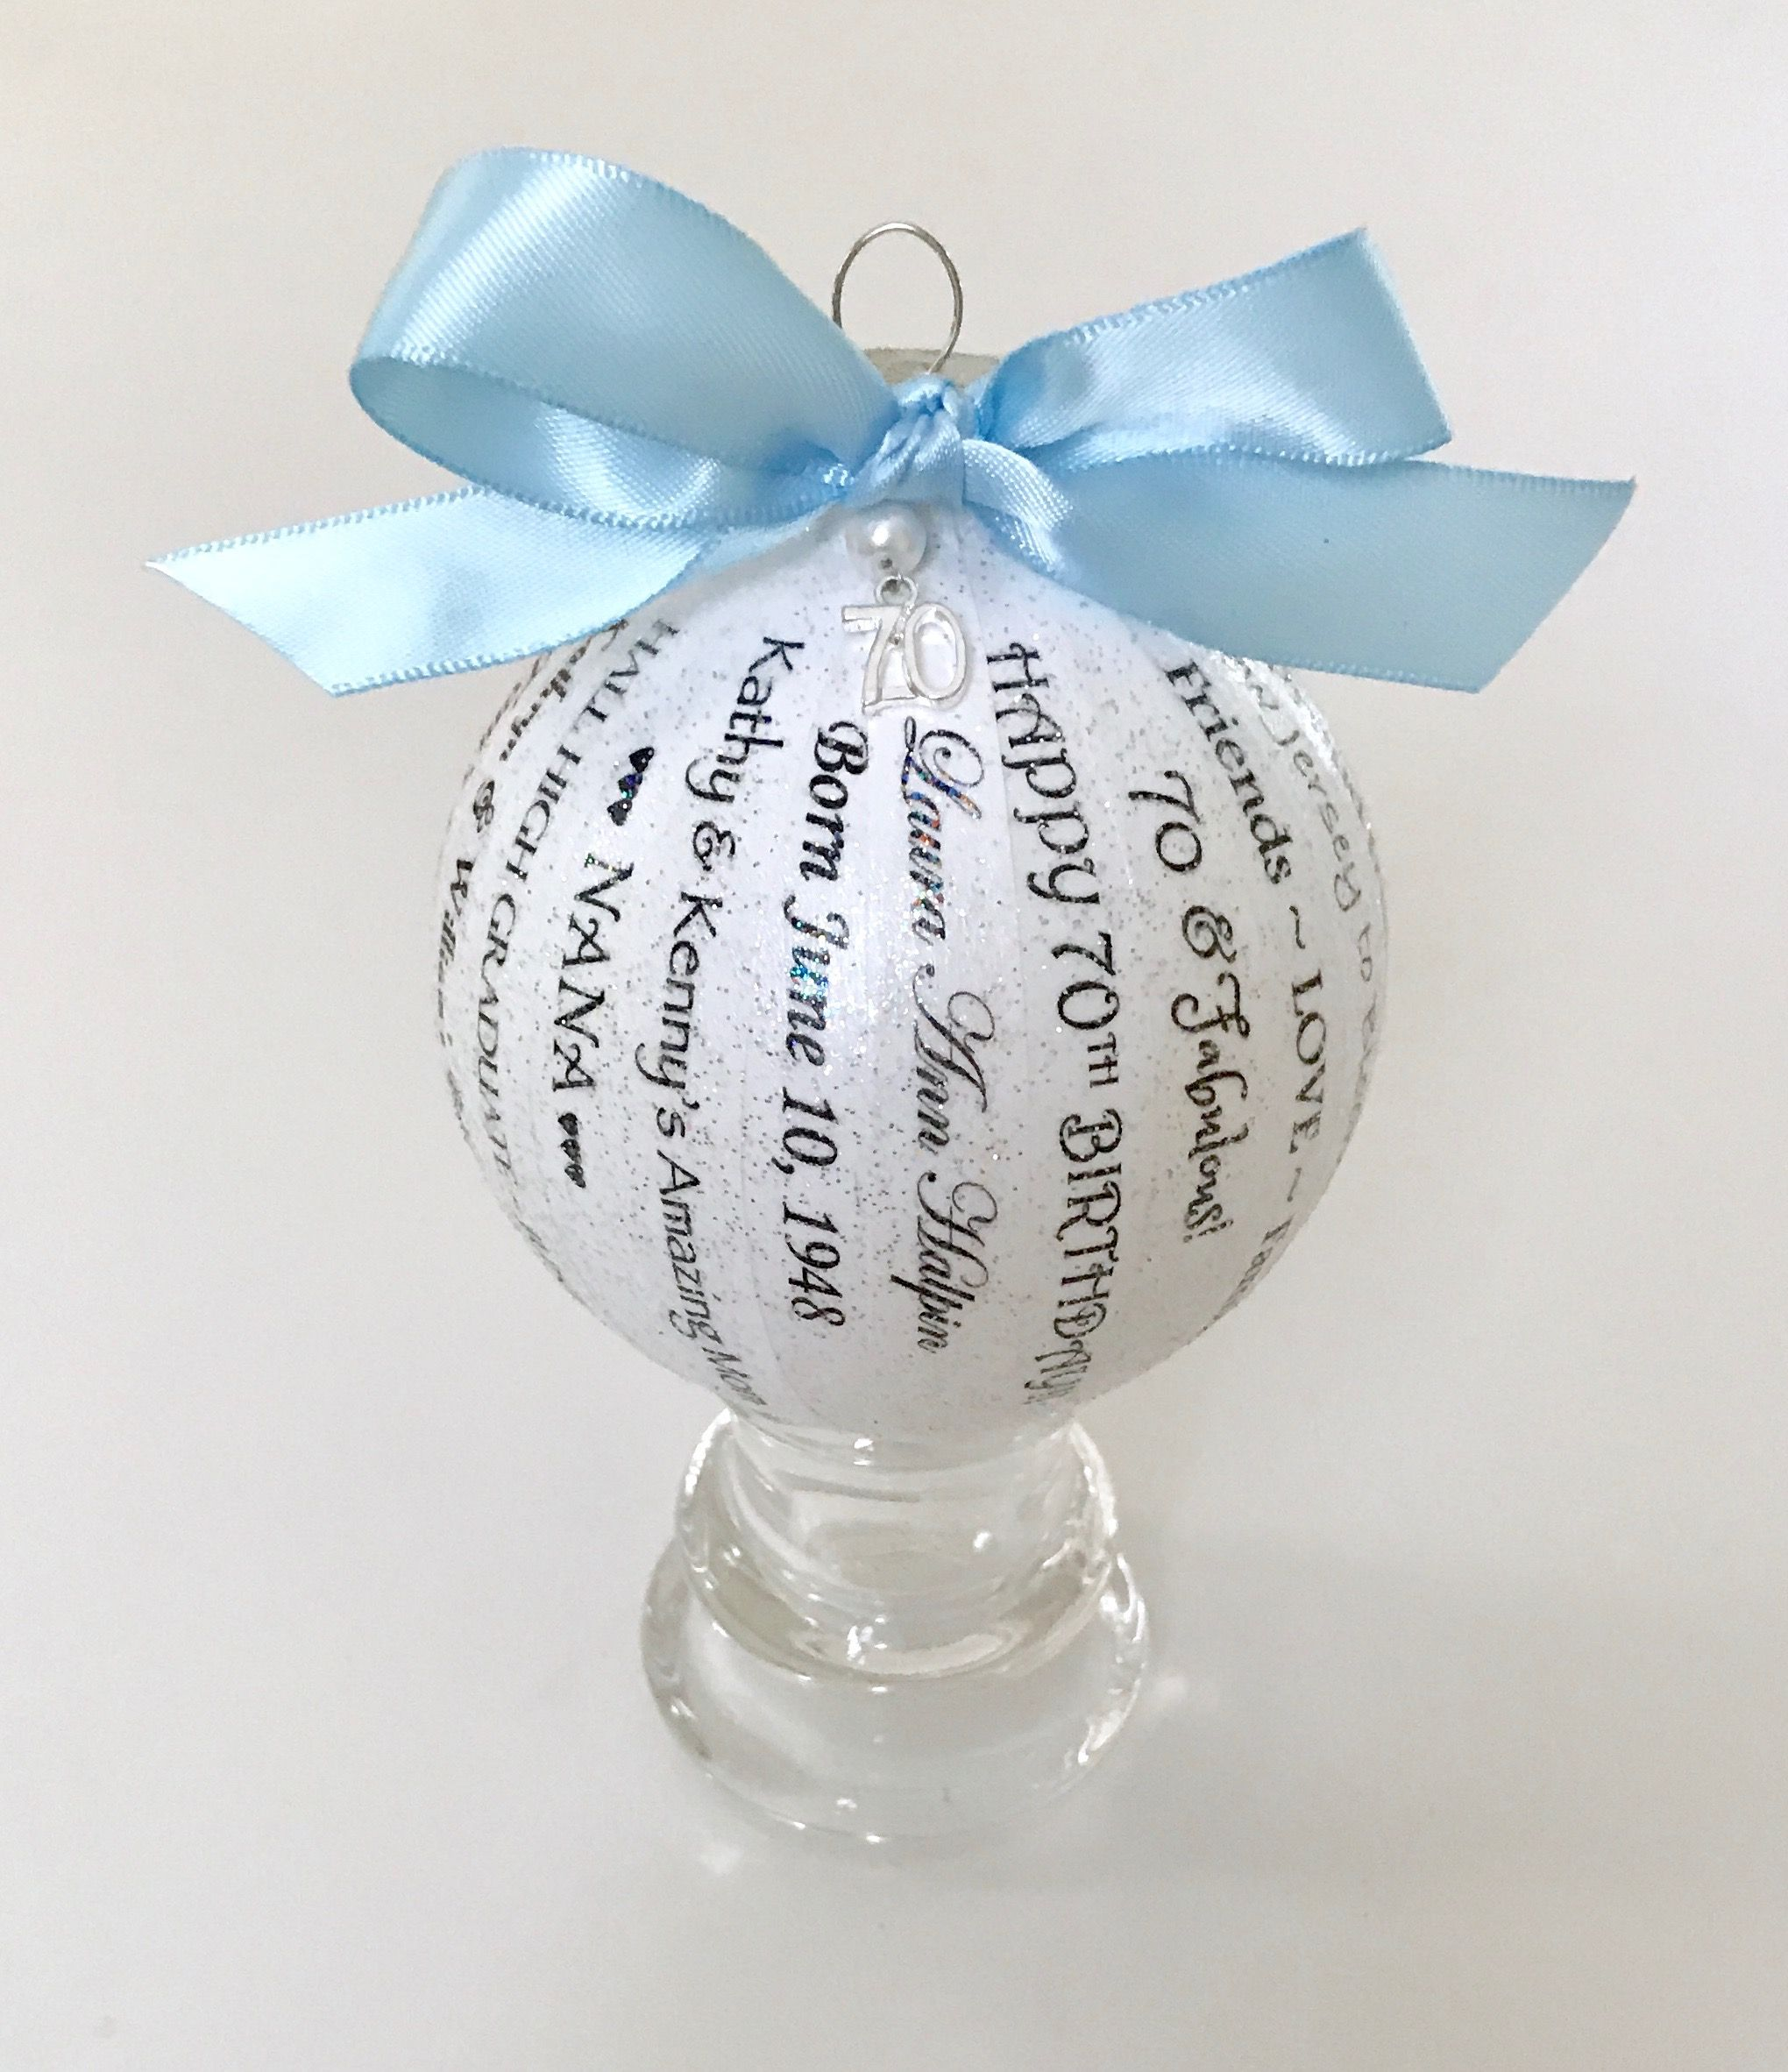 Happy 70th Birthday Personal And Unique Milestone Ornament For Your Mom Sister Best Friend Coworker Etc You Choose The Text This